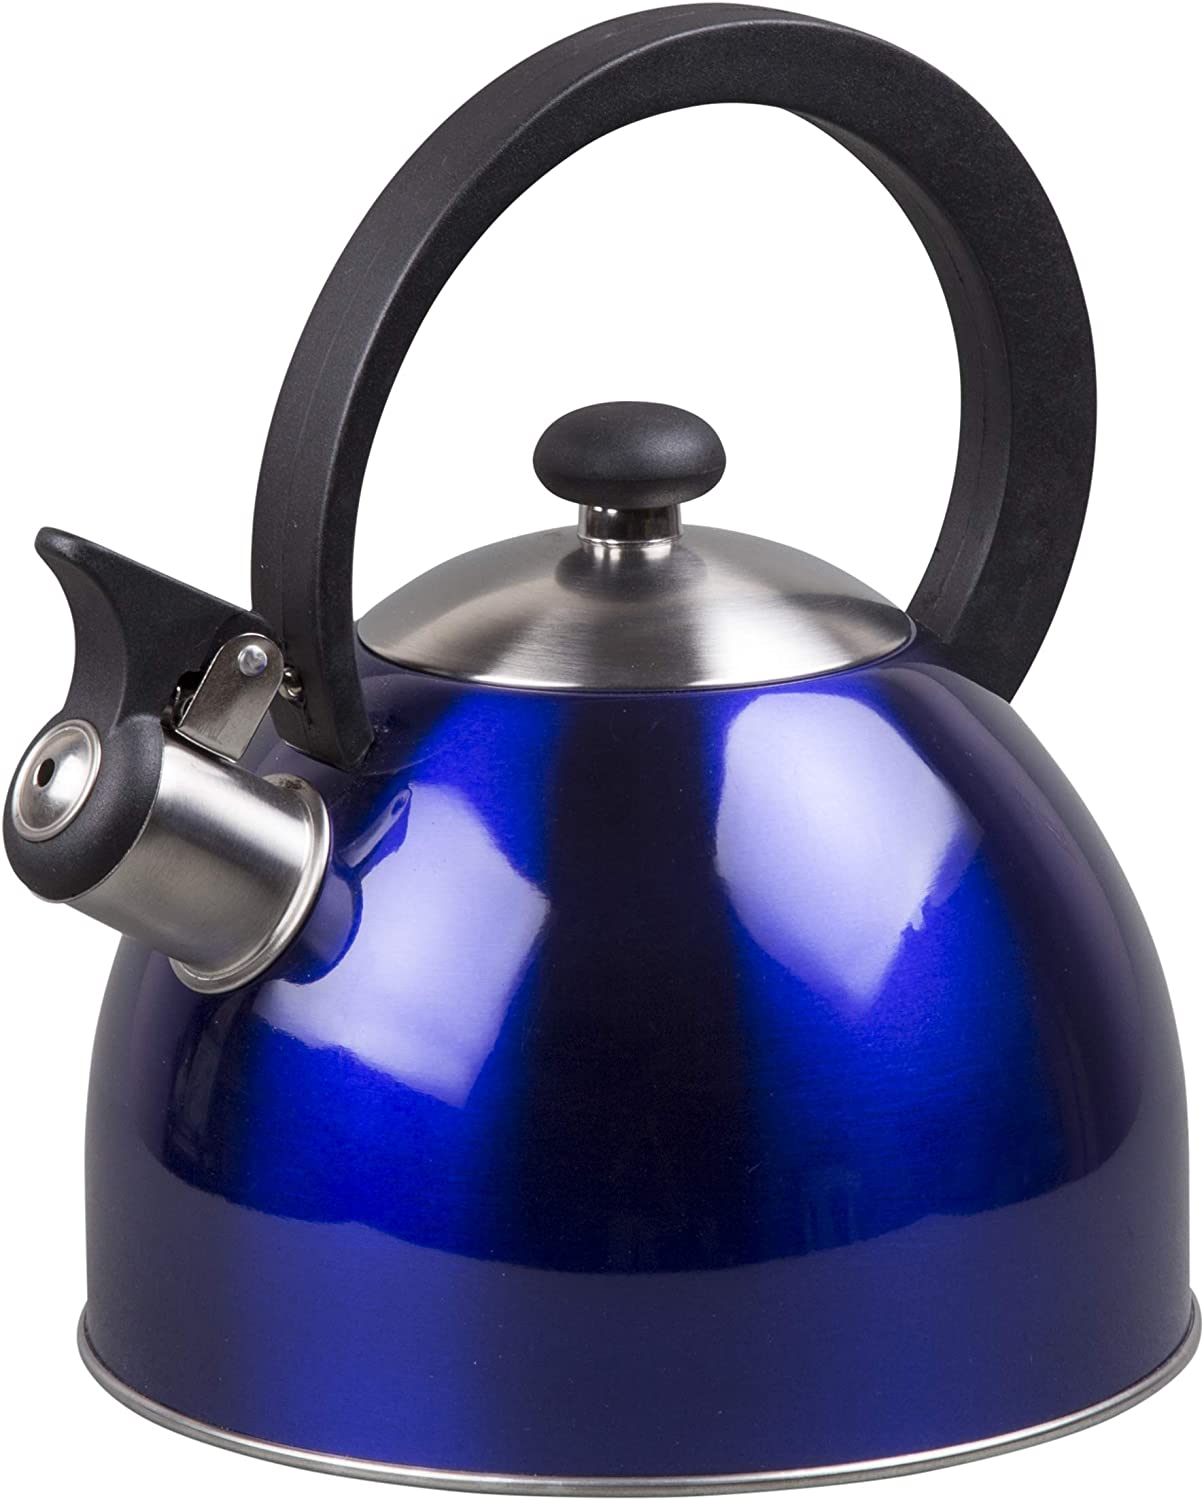 Creative Home Prelude 2.1 Qt Stainless Steel Whistling Tea Kettle - Metallic Blue